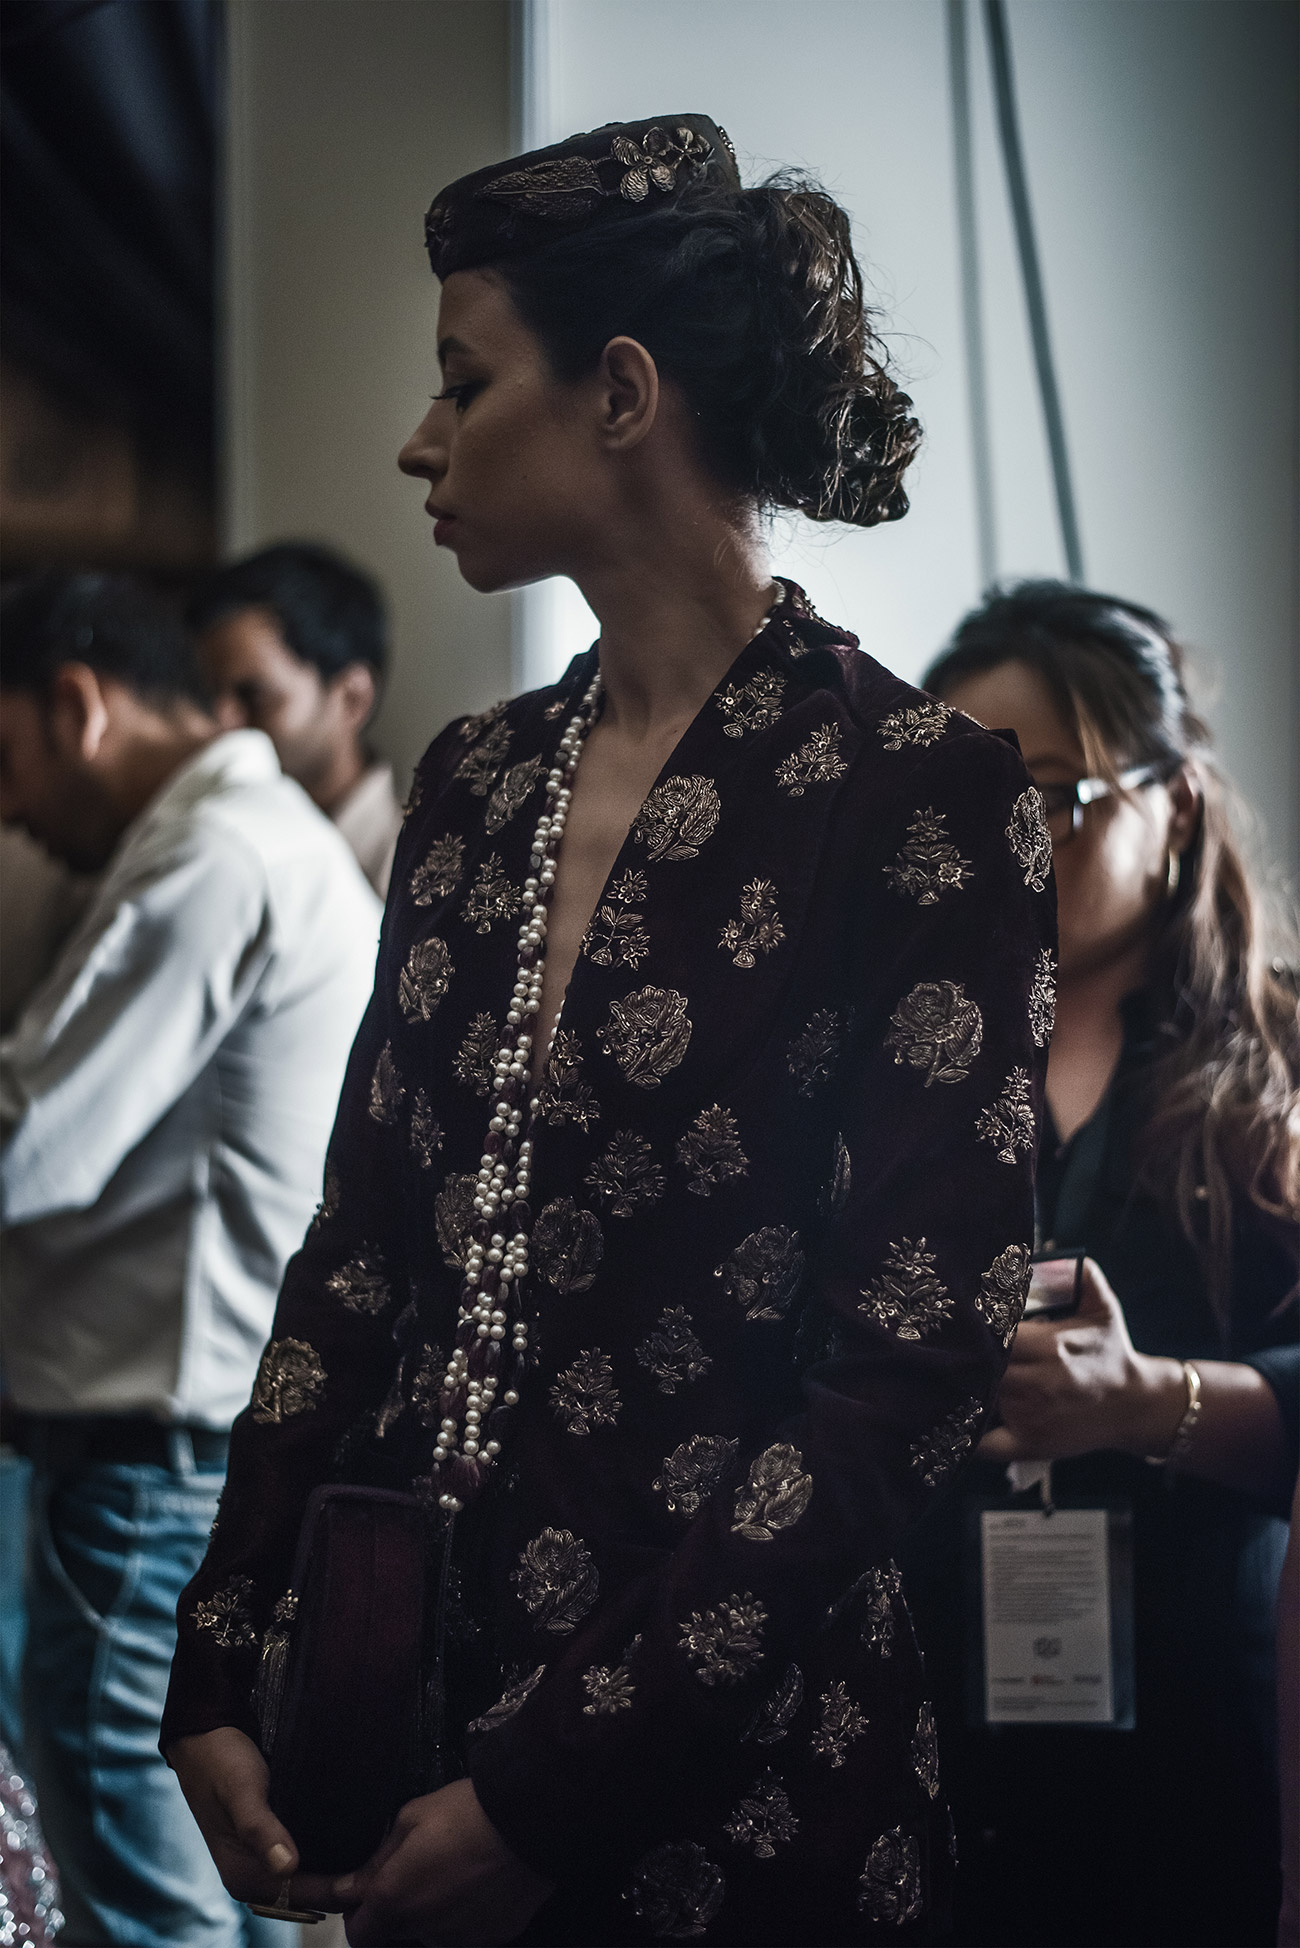 Backstage FDCI India Couture Week 2016 Photo by RAWKY KSH 24